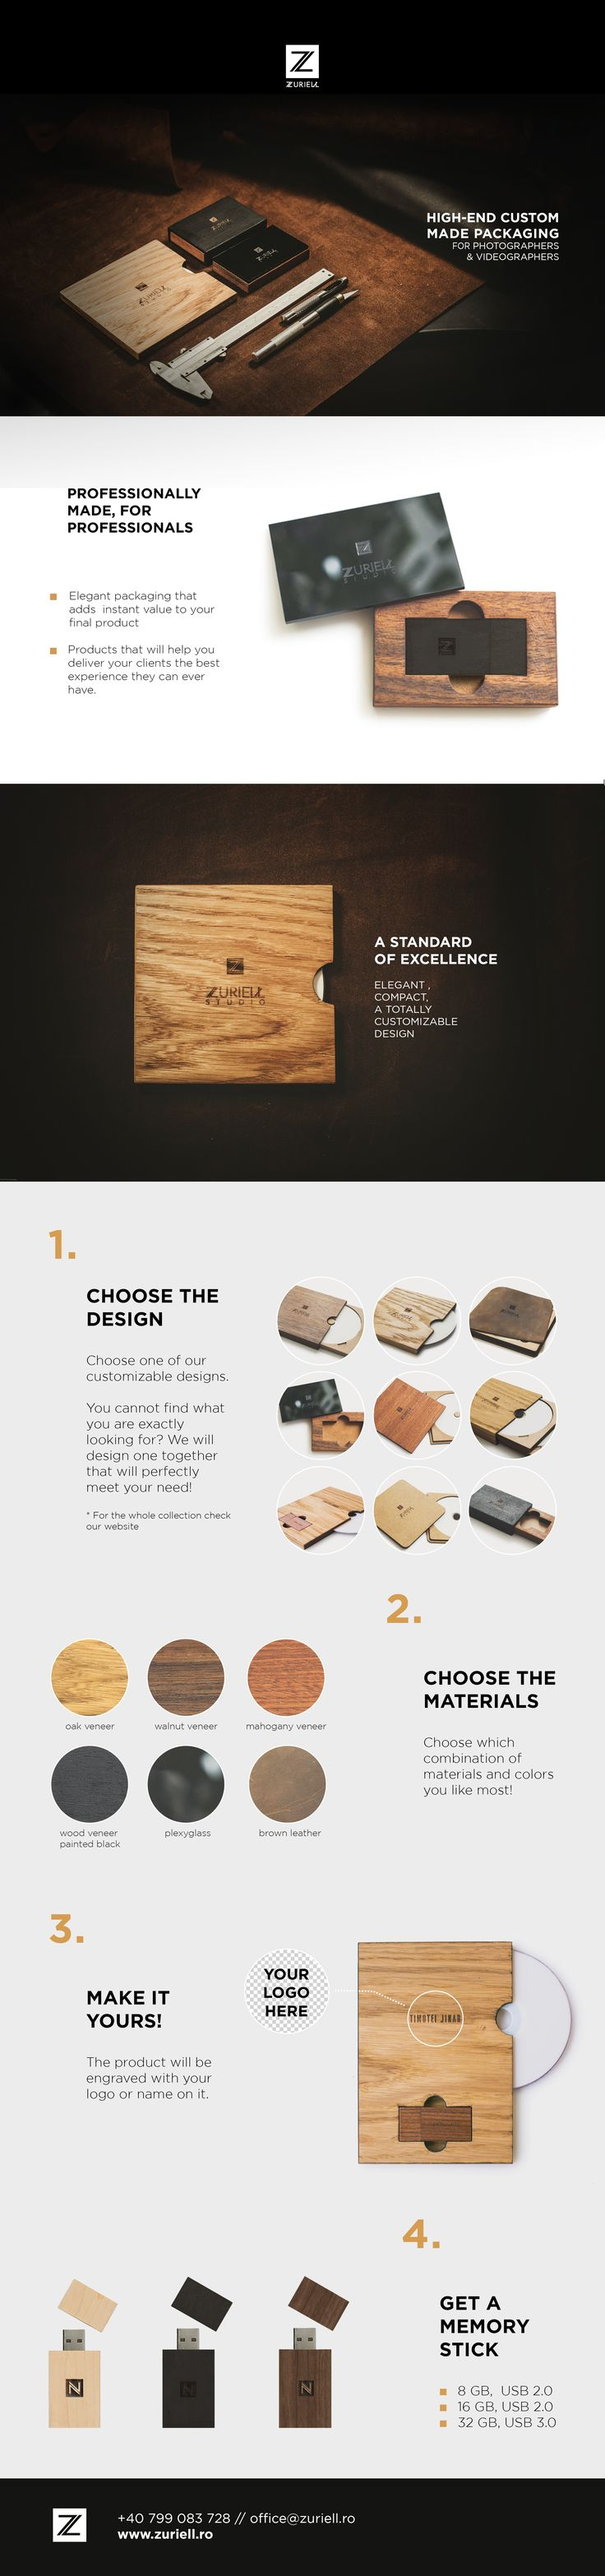 Photography / Videography Packaging   Elegant and compact   Leather, Wood   CD cases   USB Flash Drives & Cases   Brand Identity